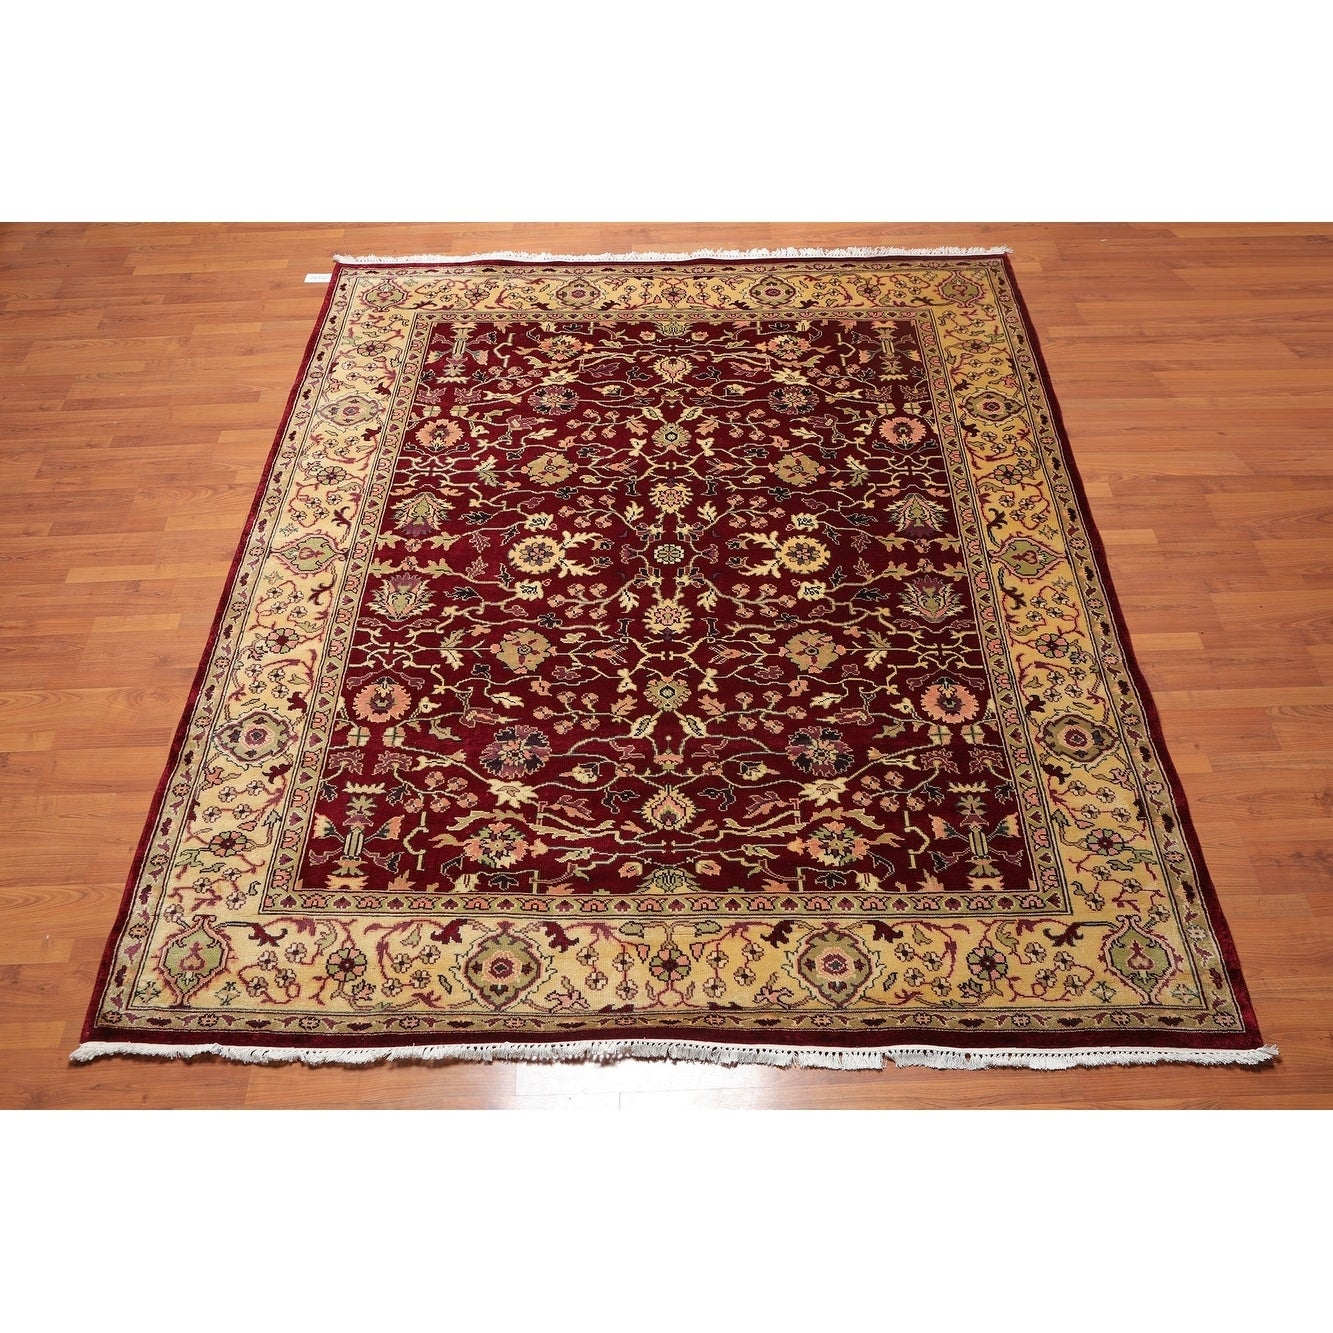 Hand Knotted Wool Persian Oriental Area Rug 8 X9 7 8 X 9 7 On Sale Overstock 27145340